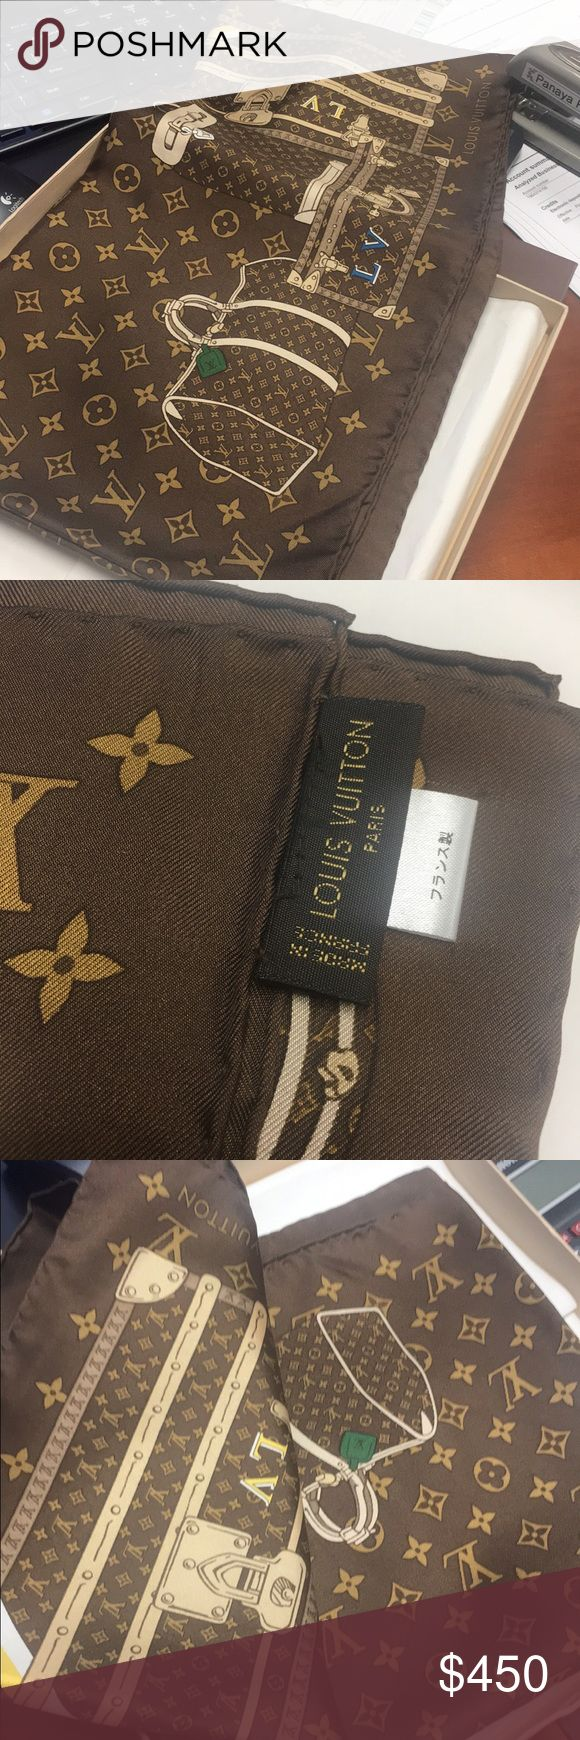 Authentic LV scarf monogram Trunks Square Great Used condition. Come with box Louis Vuitton Accessories Scarves & Wraps